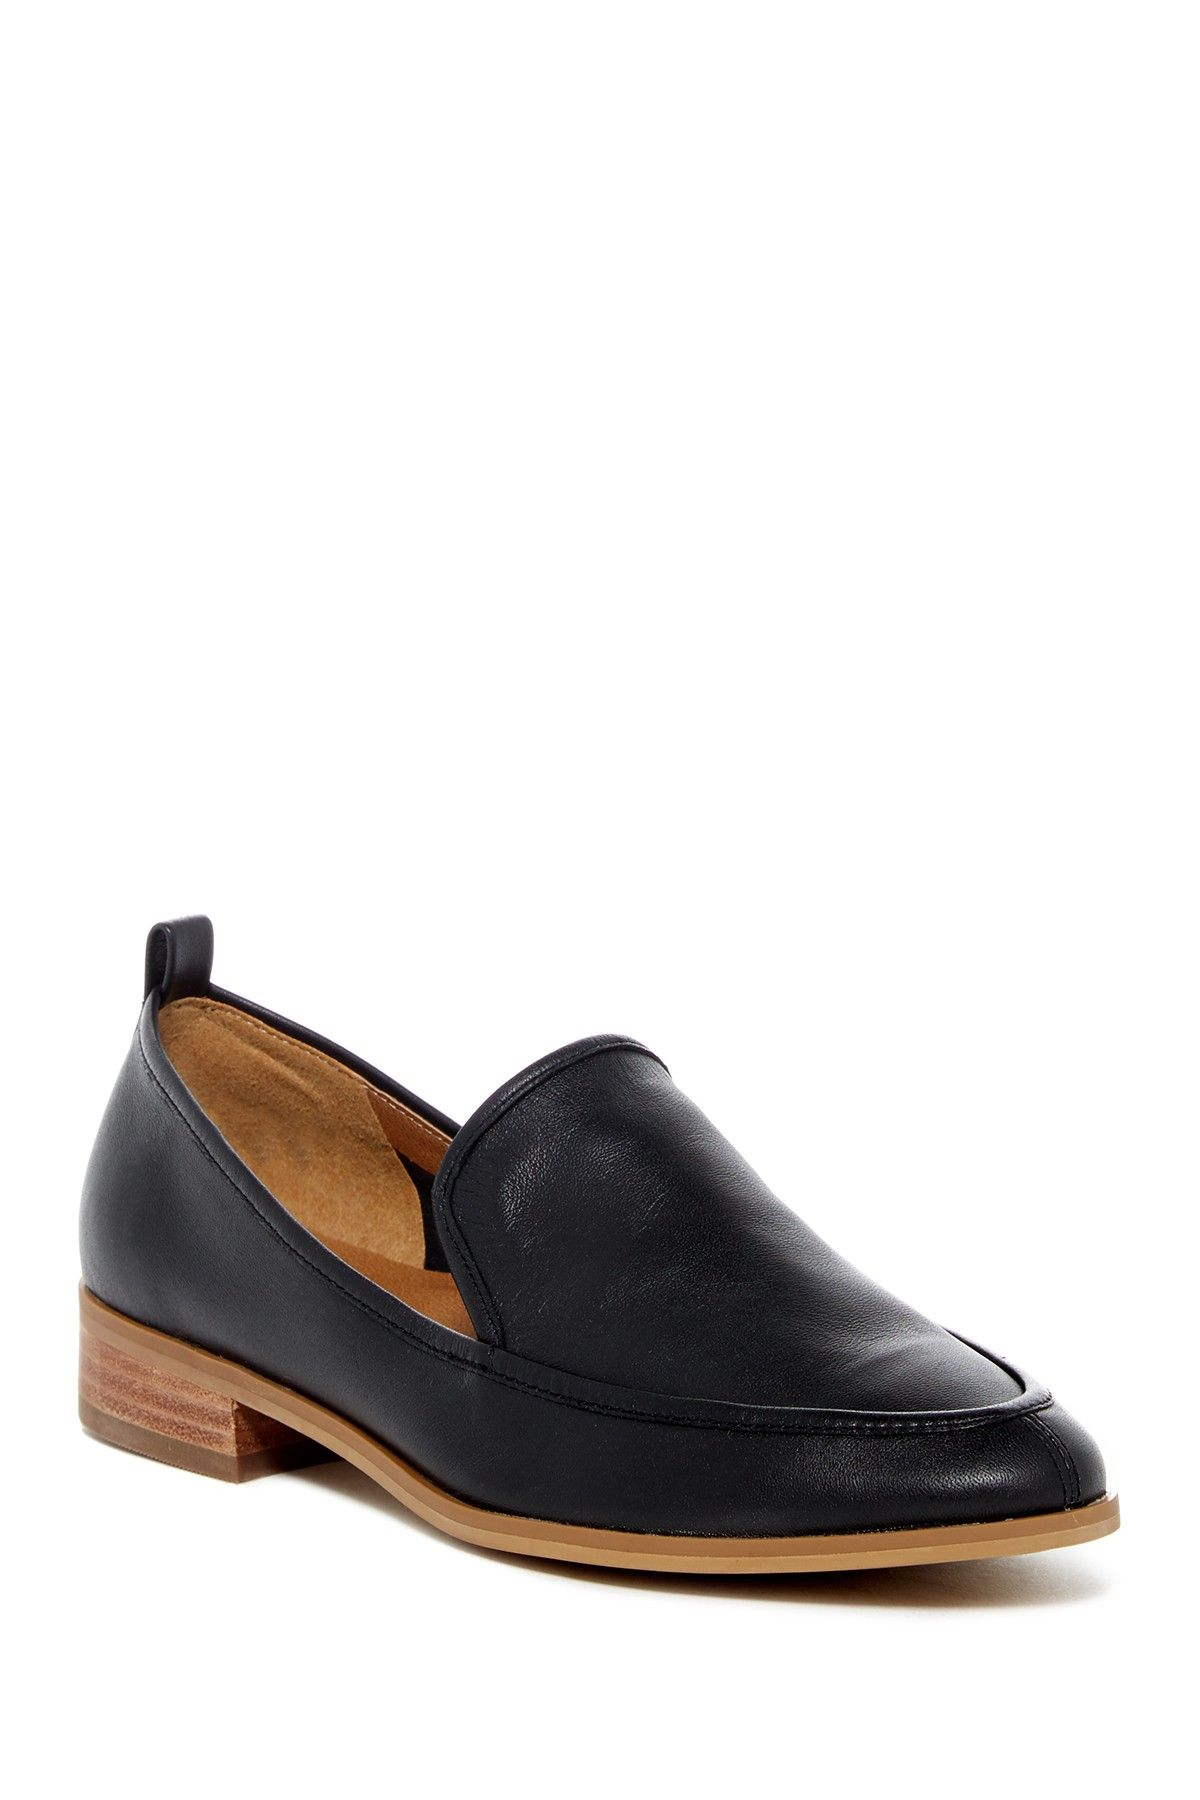 ea466bce94d3 Kellen Almond Toe Loafer - Wide Width Available by SUSINA on  nordstrom rack